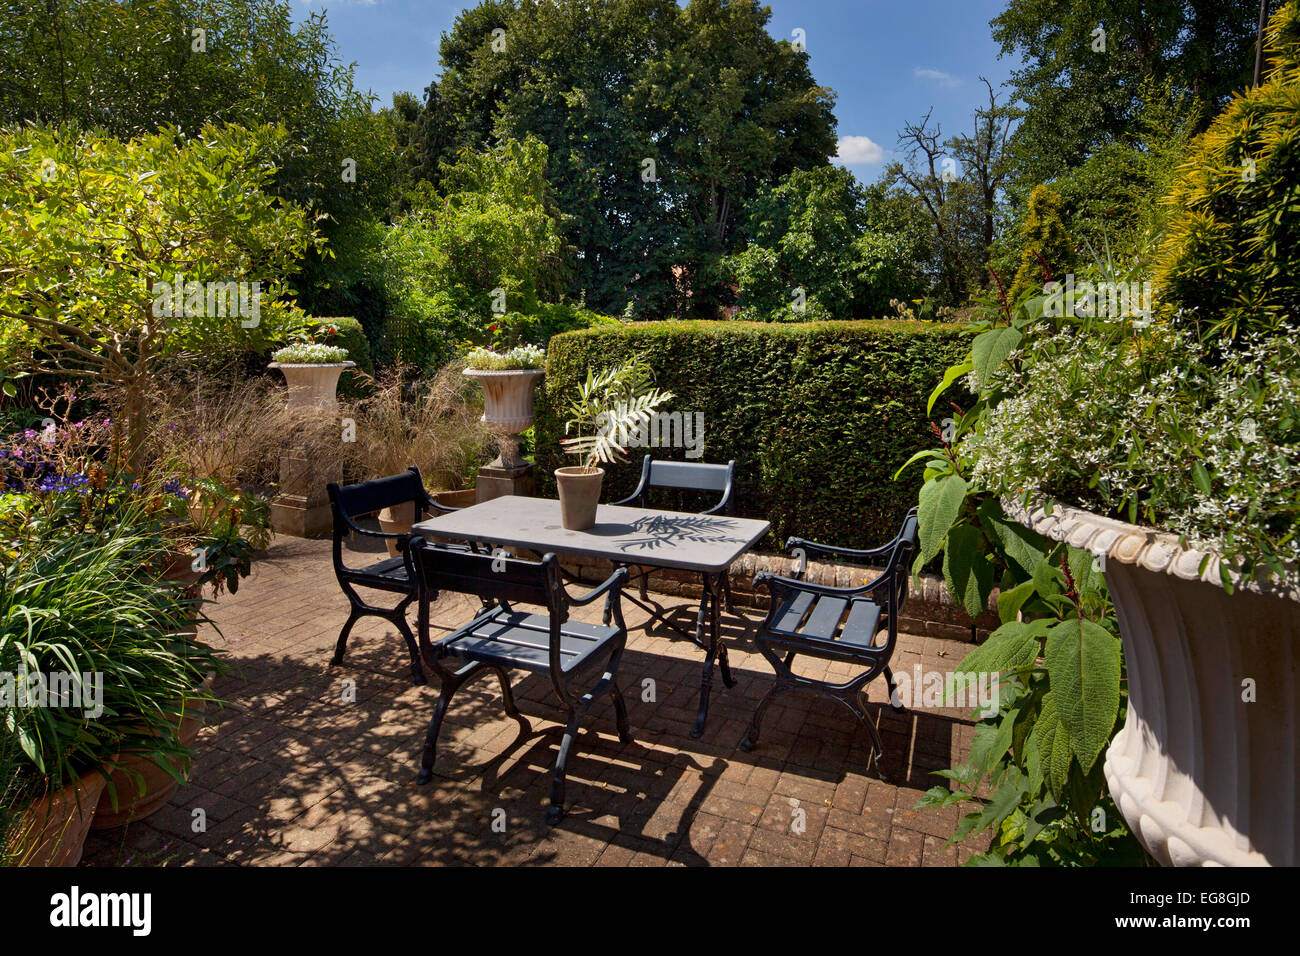 Formal Outdoor Seating Area With Large Urns Stone Table And Brick Patio In  English Garden,Oxfordshire,England